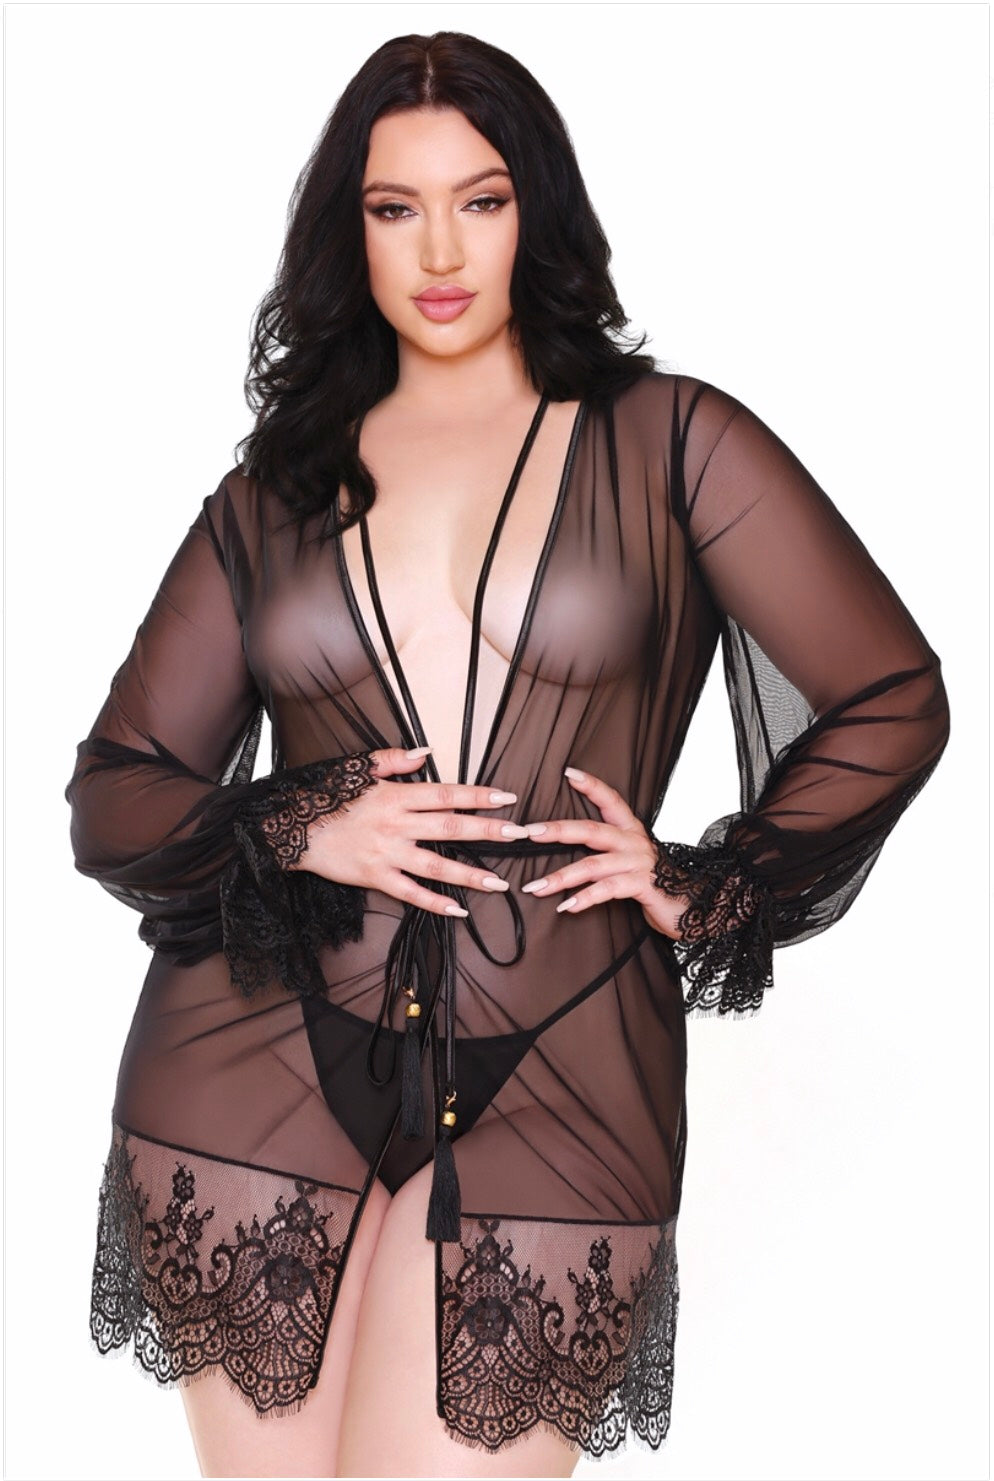 Helena Lace Robe & G-String